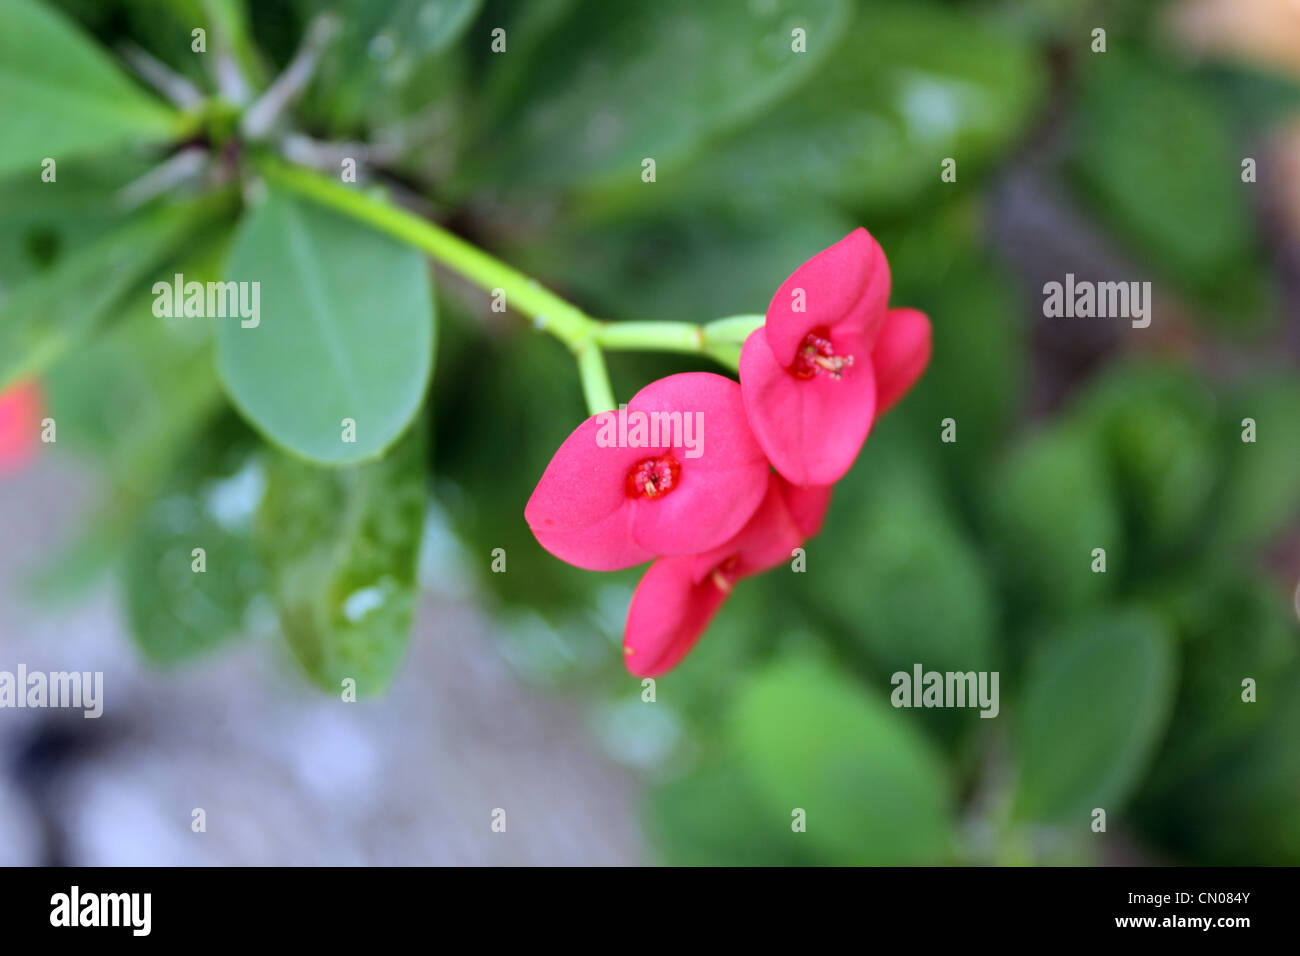 Red Pink Thorn Flower Stock Photos Red Pink Thorn Flower Stock